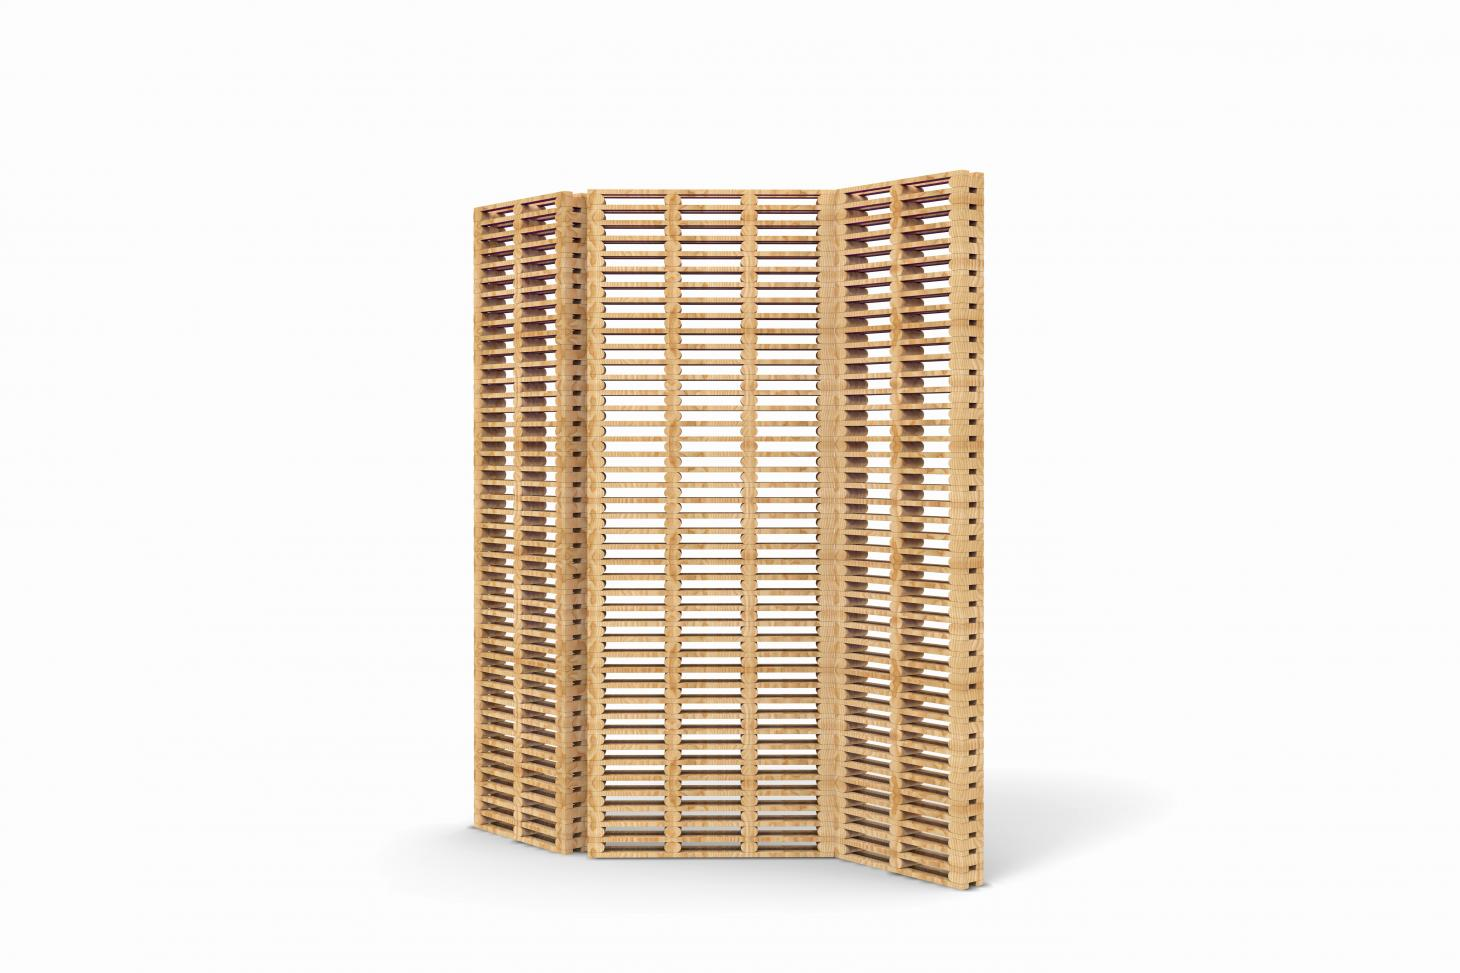 Wooden screen made of interlocking pieces